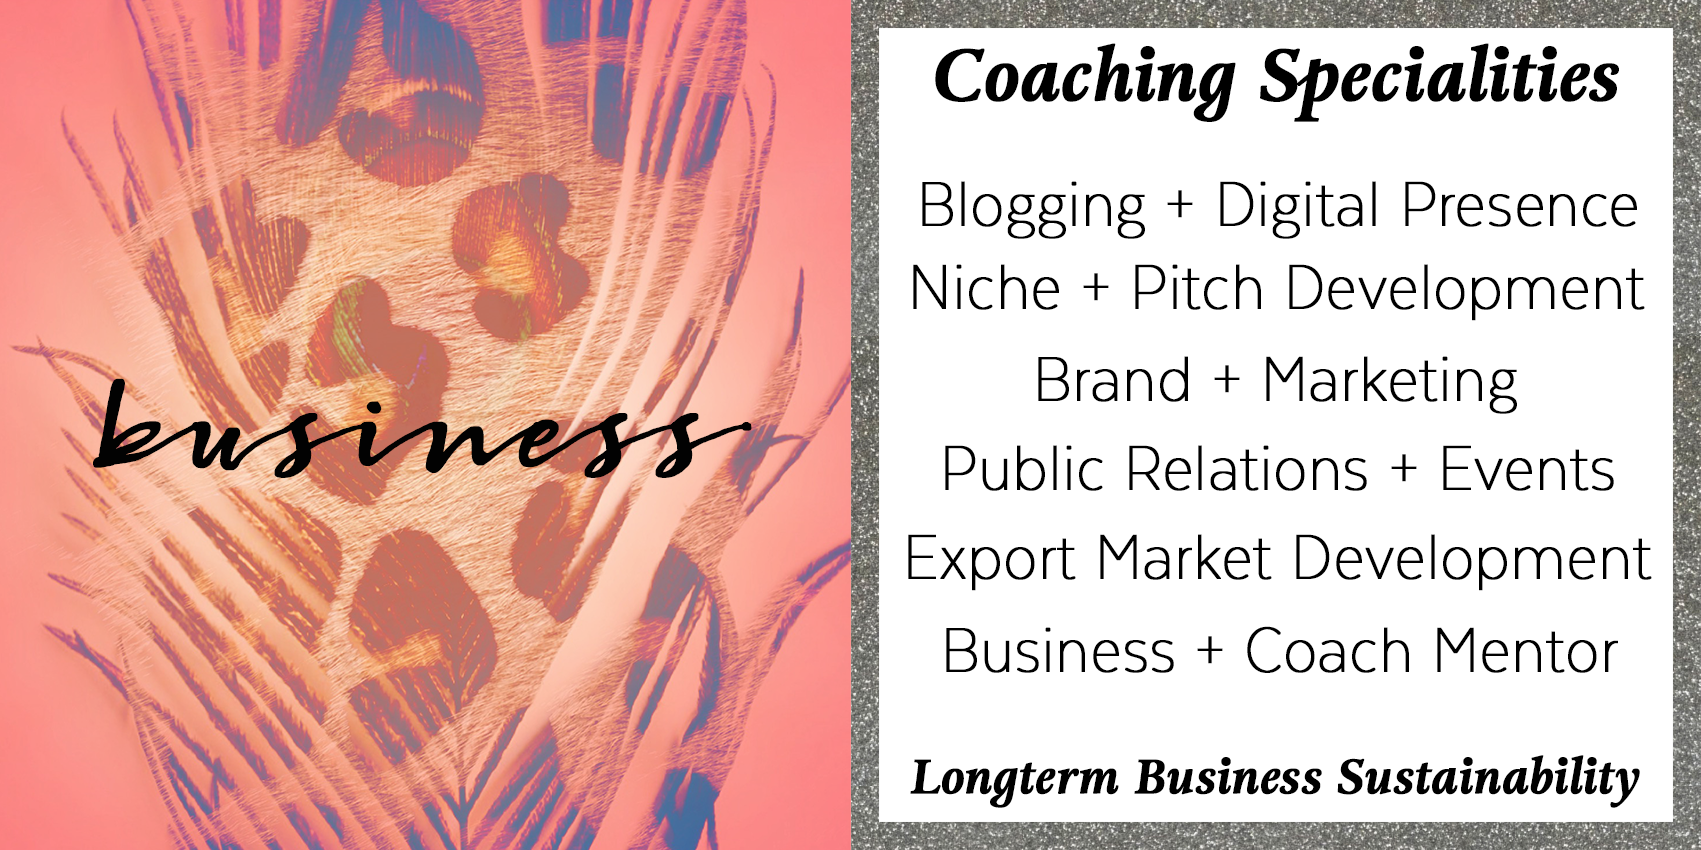 Business, Entrepreneur, Solopreneur Coaching Specialities